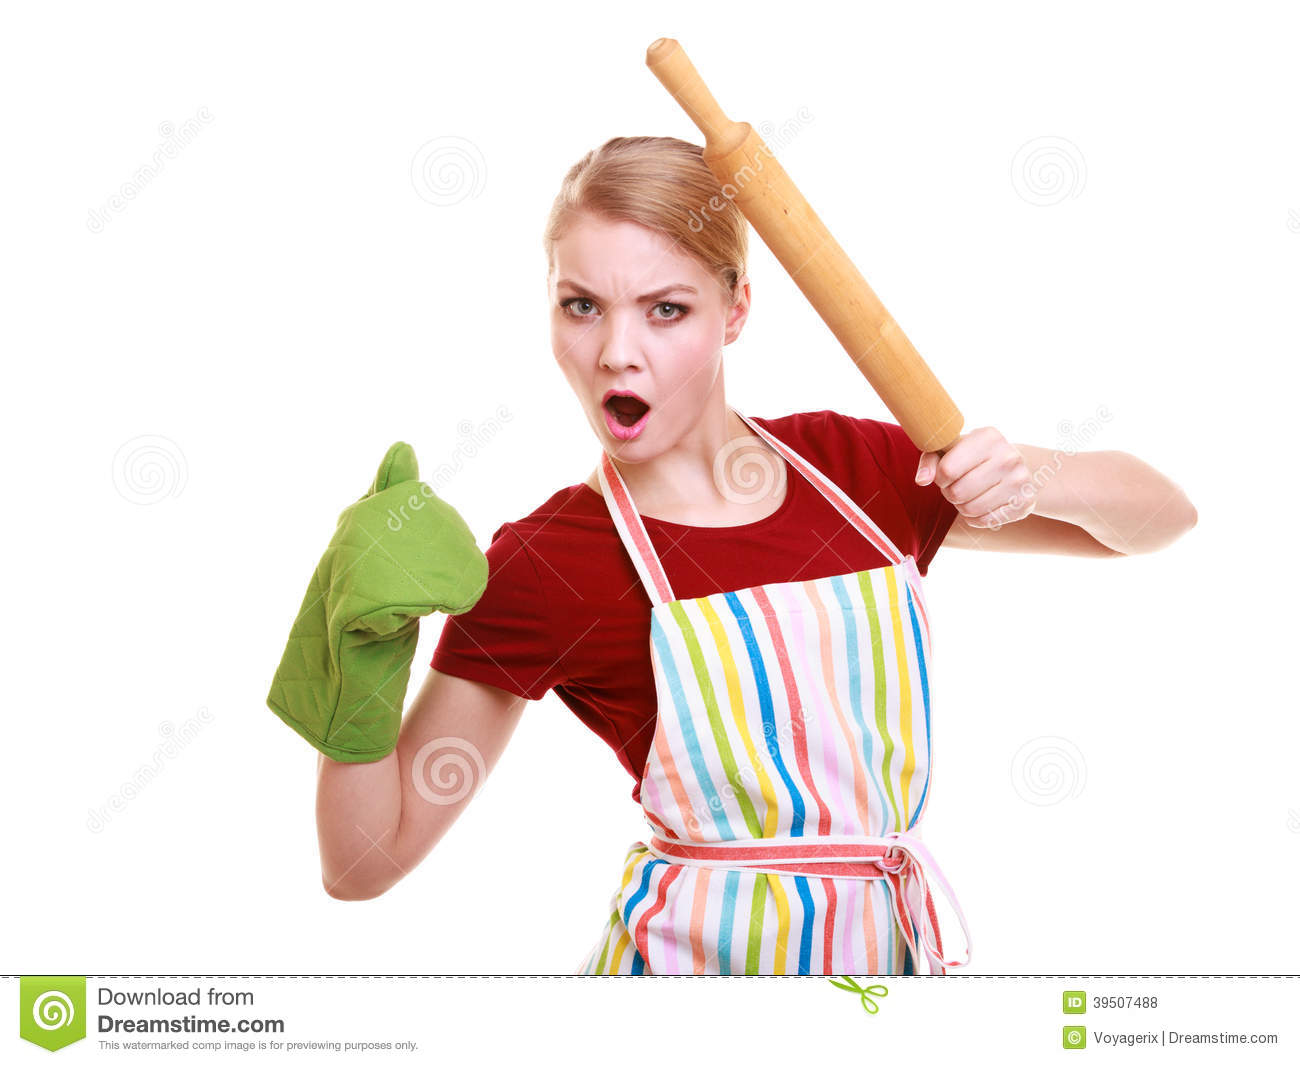 Funny housewife kitchen apron oven mitten holds rolling pin isolated